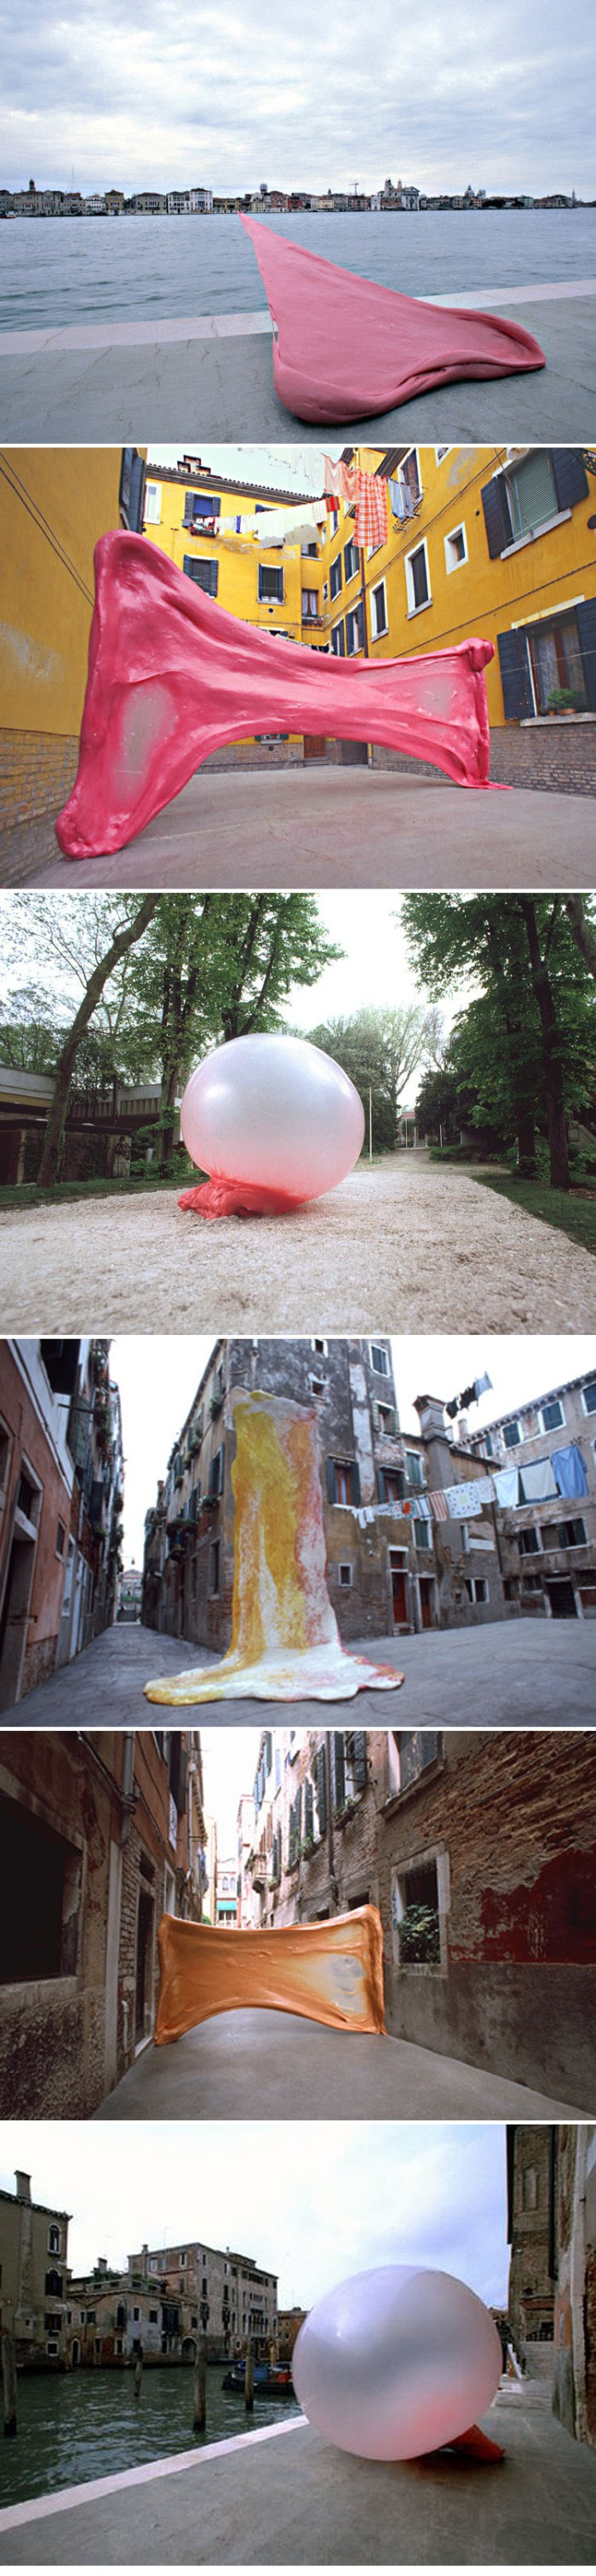 Photographs, Chewing Gum, Bubble gum art, trompe l'oeil, Venice, Simone Decker